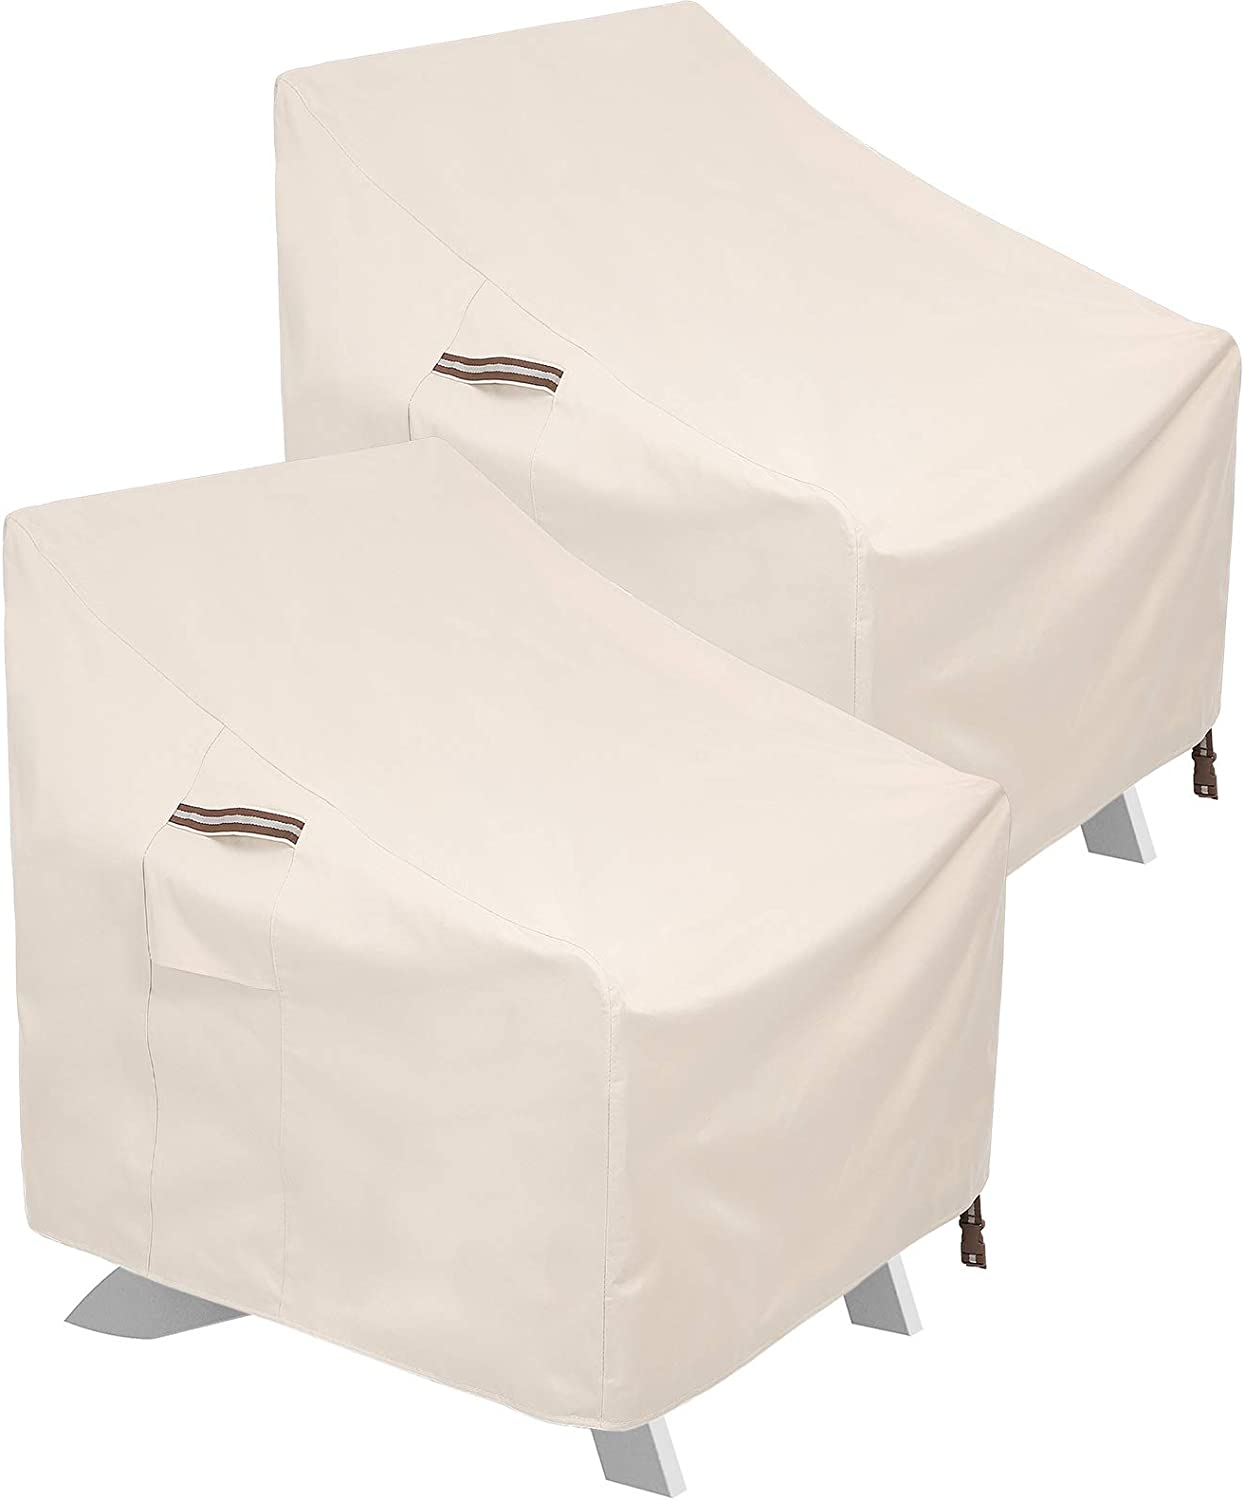 SONGMICS Patio Adirondack Chair Covers, Set of 2, Heavy Duty Patio Chair Covers, 600D Waterproof Protective Covers, for Outdoor Garden Deep Seat Chair, 31.9 x 33.9 x 35.8/19.3 Inches, Beige UGCC007M02